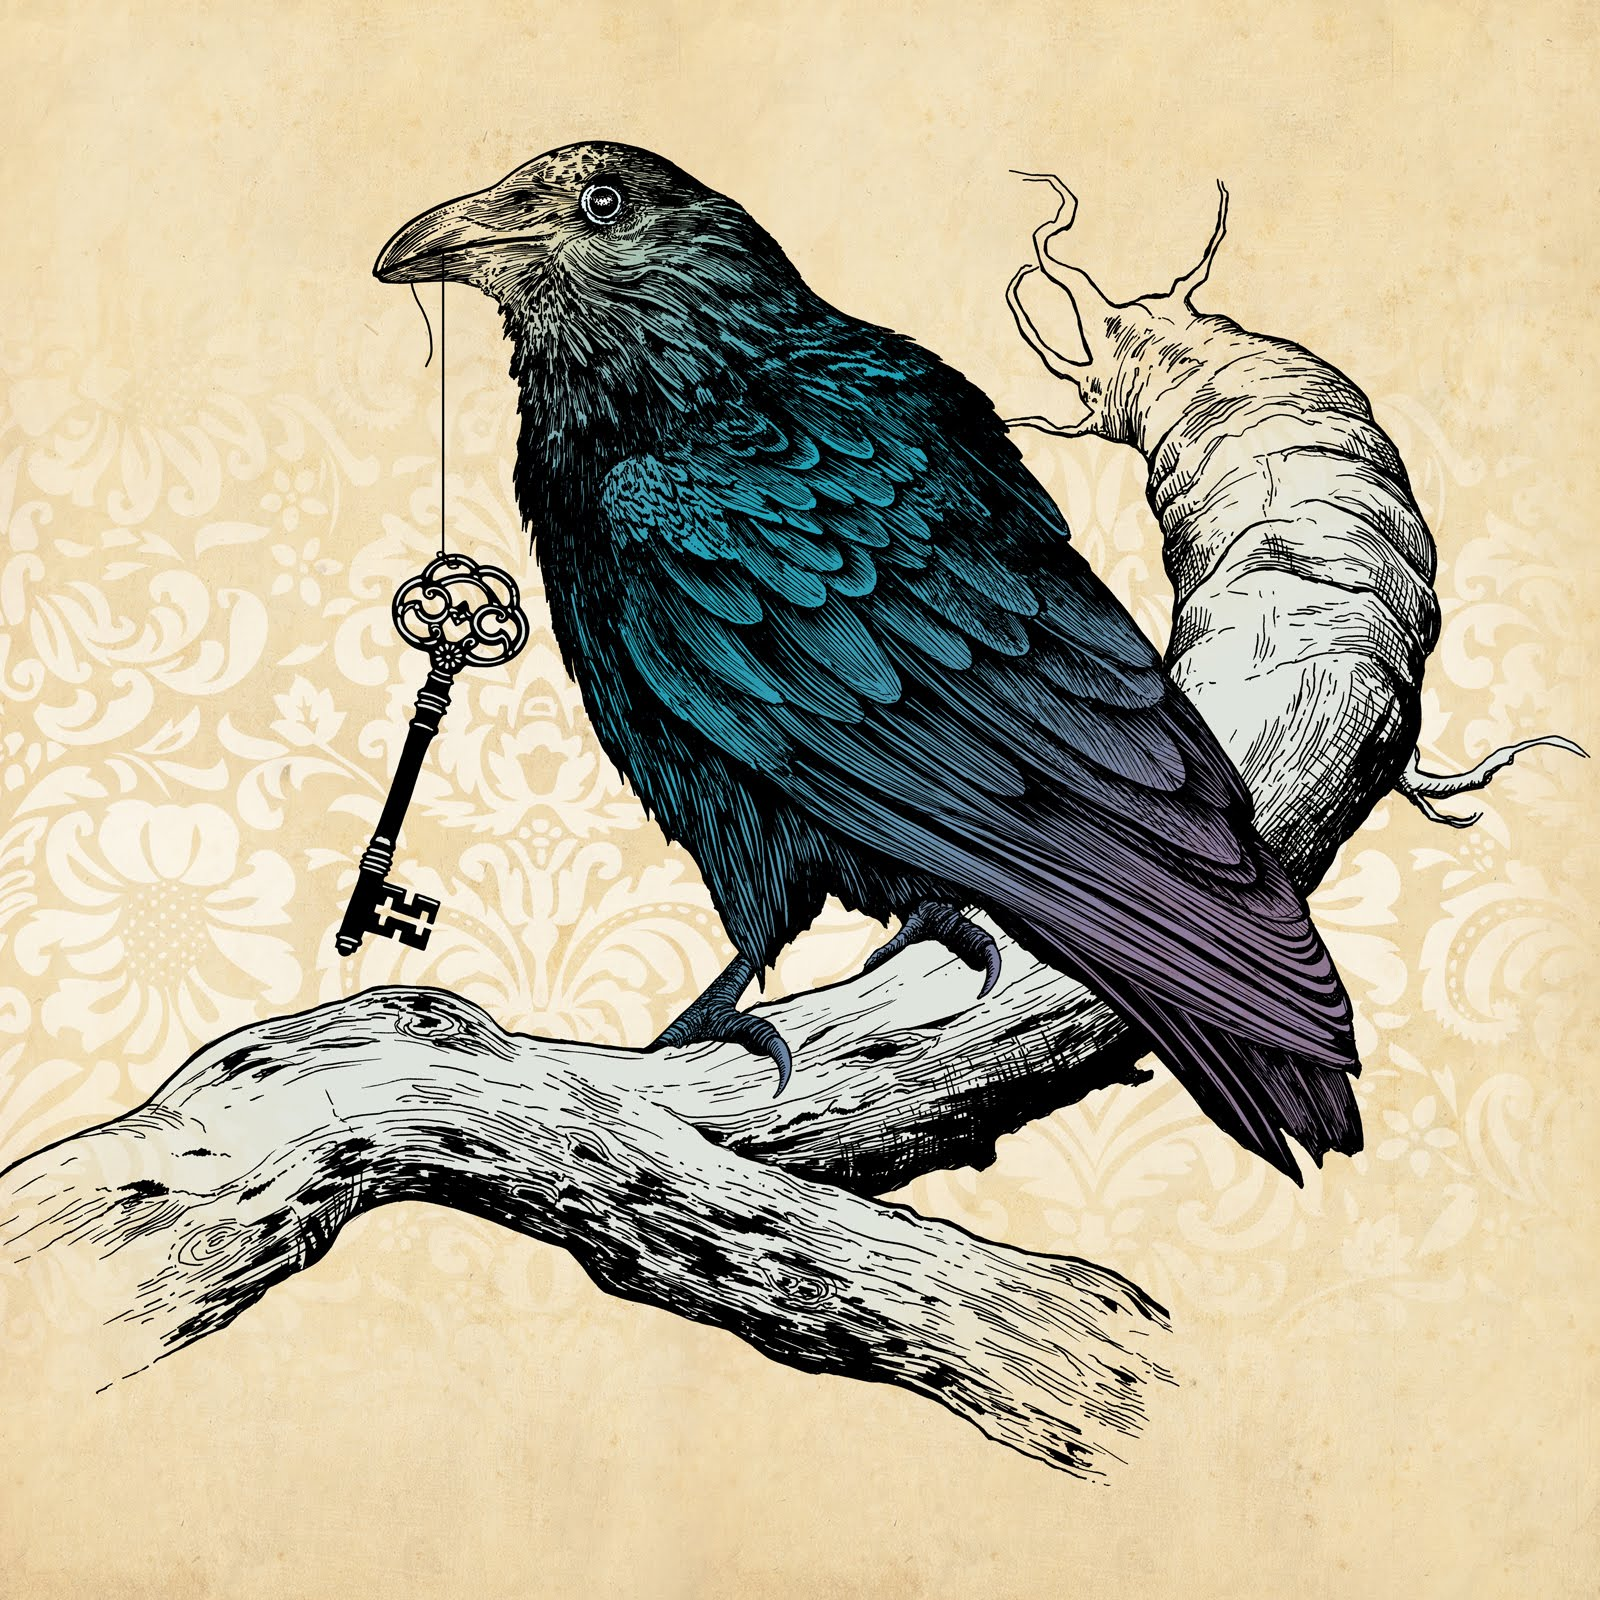 Drawn raven victorian Explore  Ravens Call and